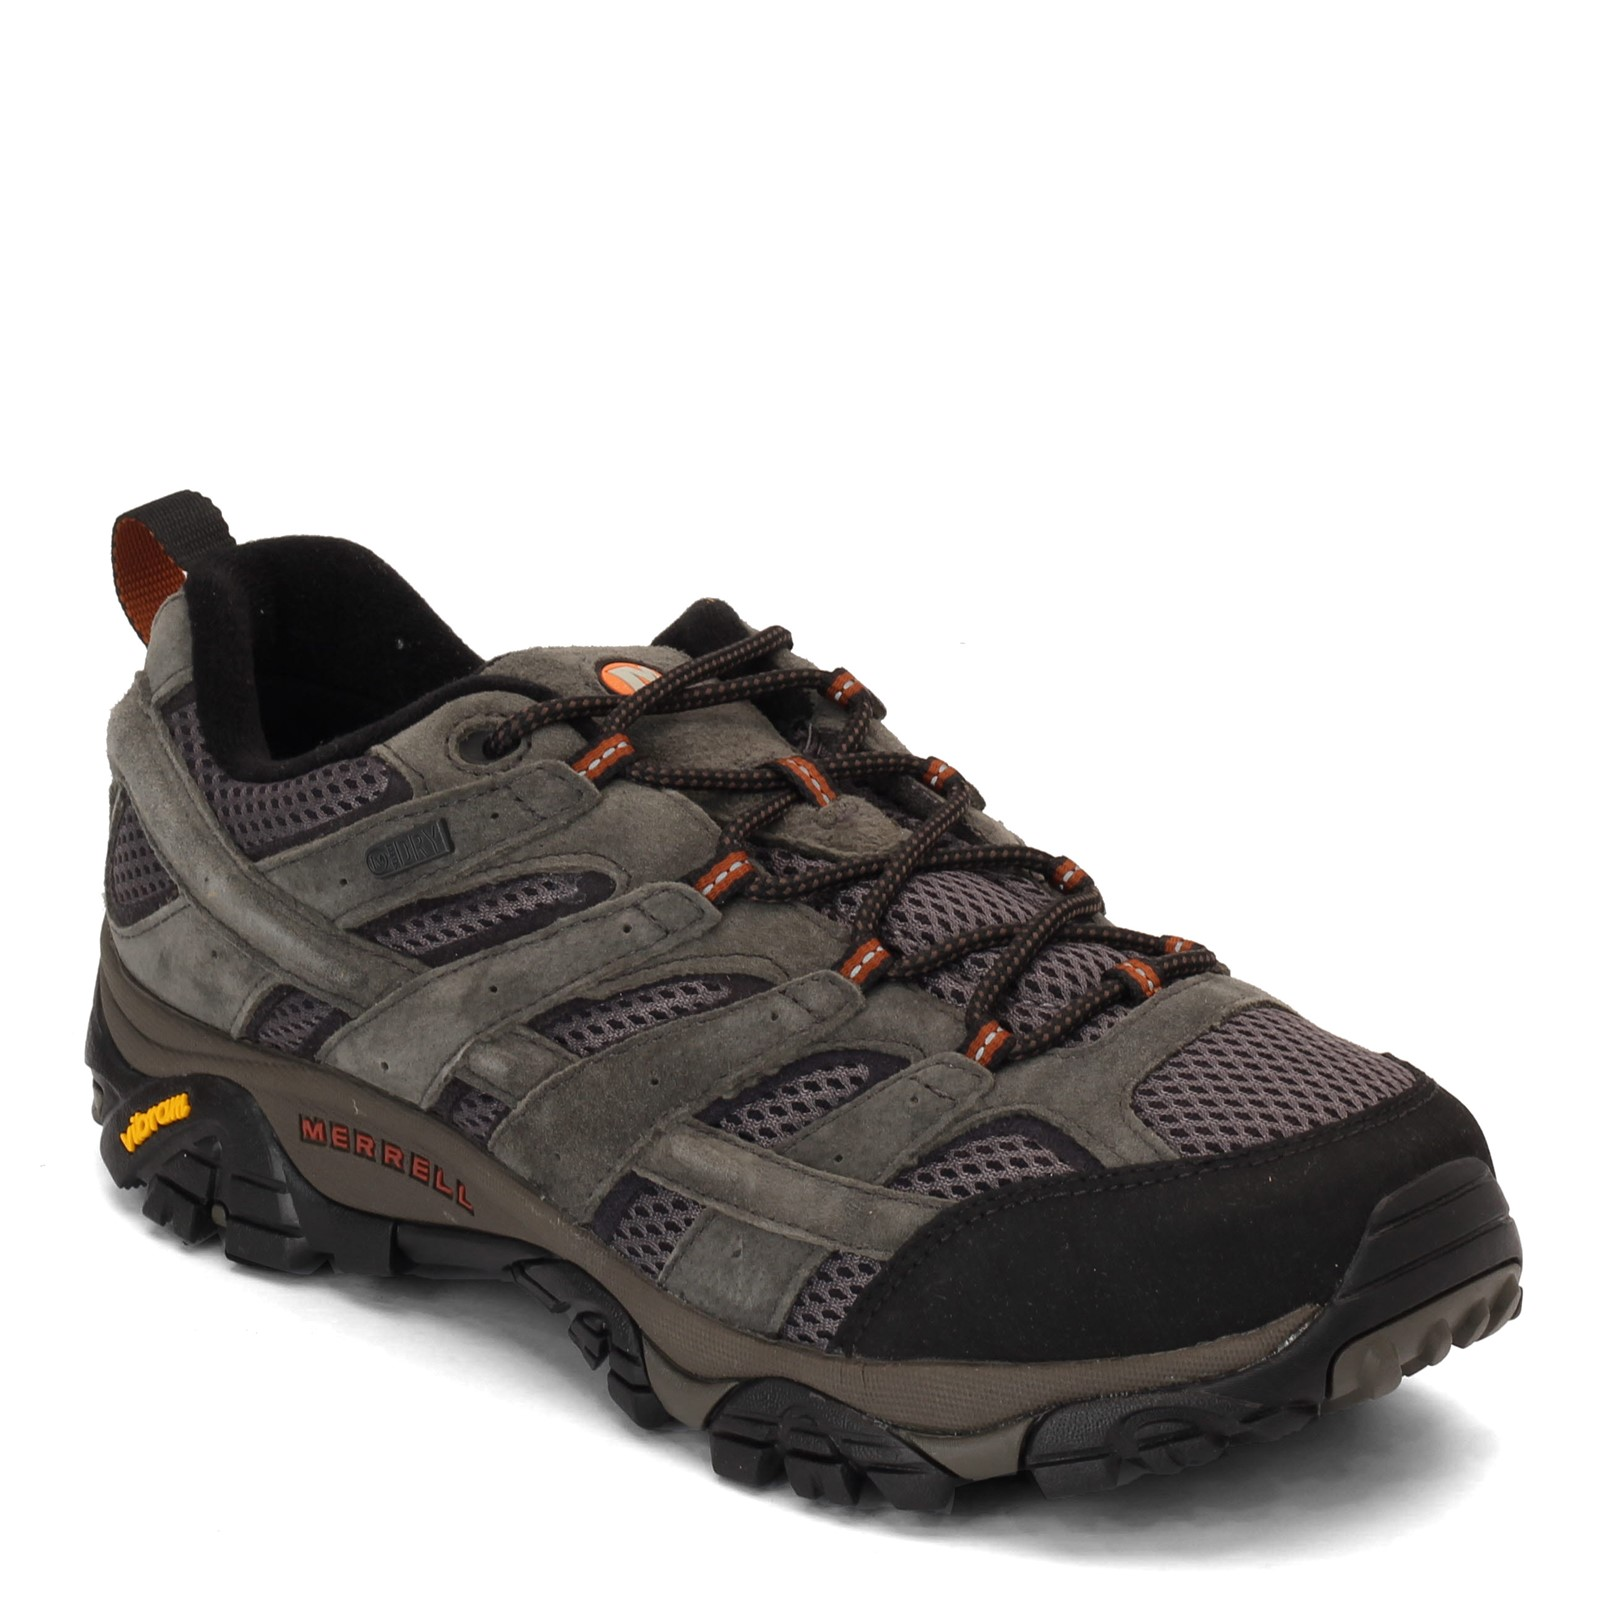 stylish design skilful manufacture best sell Men's Merrell, Moab 2 Waterproof Boot - Wide Width